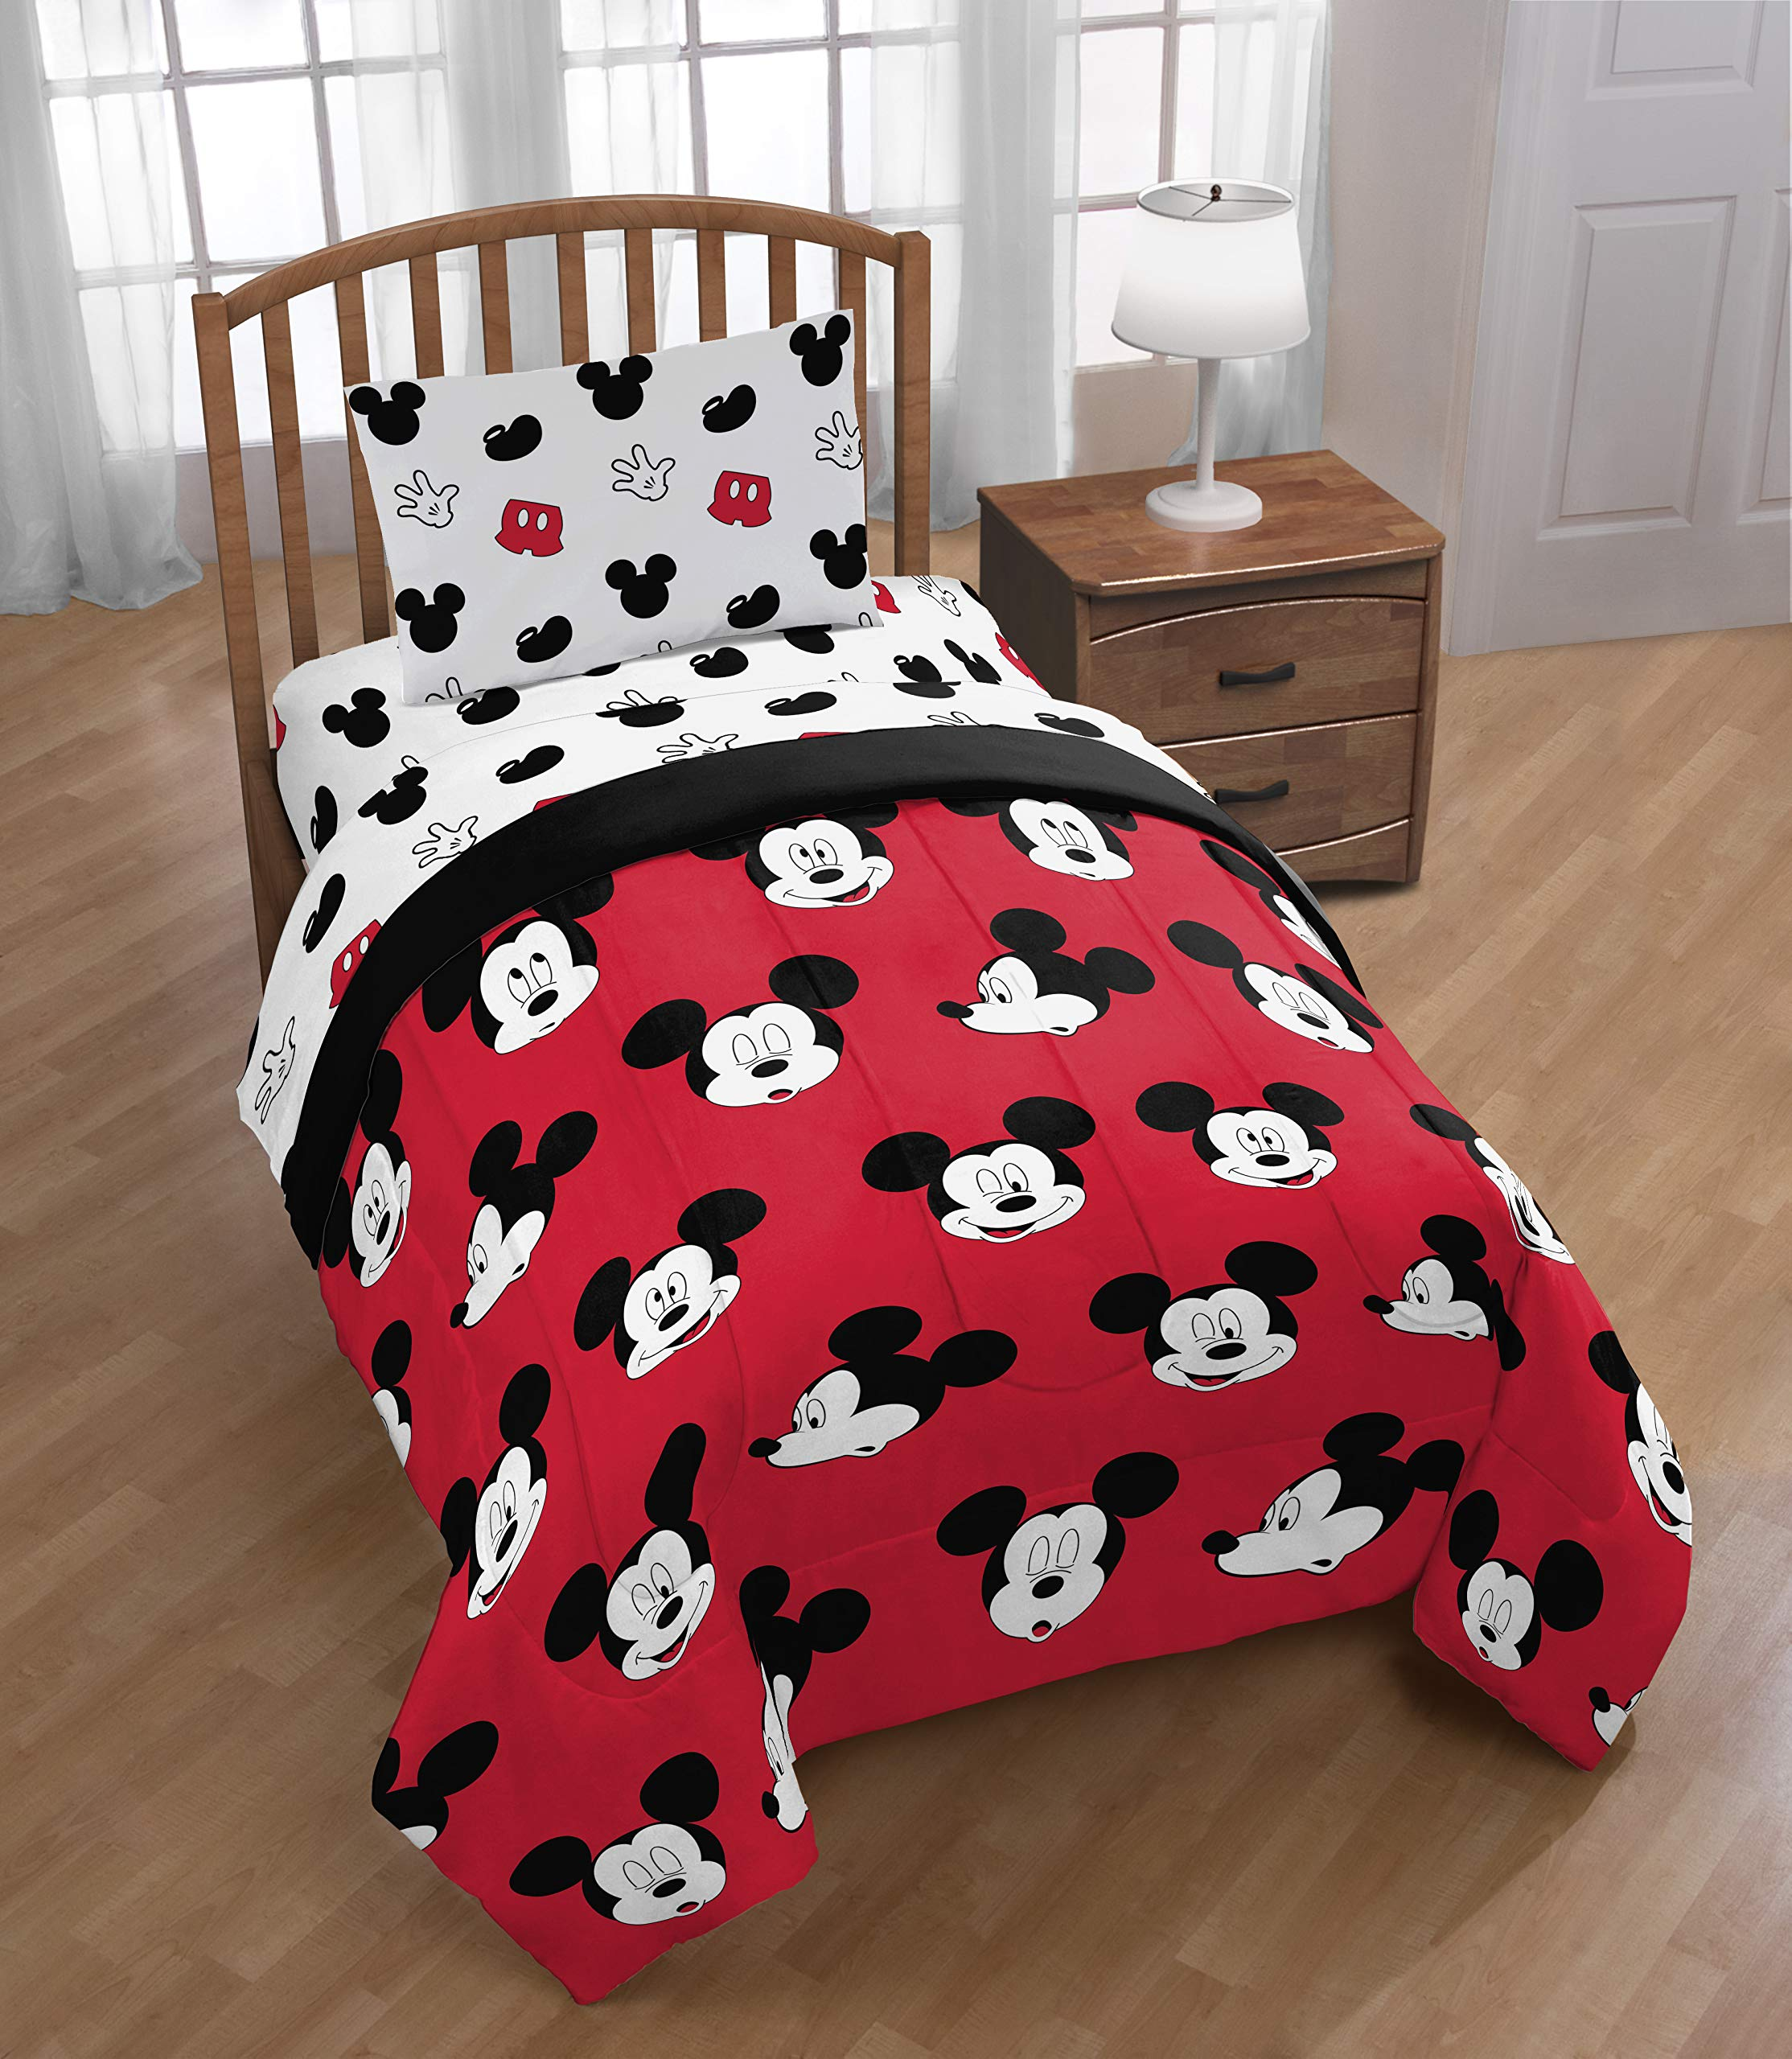 Jay Franco Disney Mickey Mouse Cute Faces 4 Piece Twin Bed Set - Includes Reversible Comforter & Sheet Set - Super Soft Fade Resistant Polyester - (Official Disney Product) by Jay Franco (Image #6)